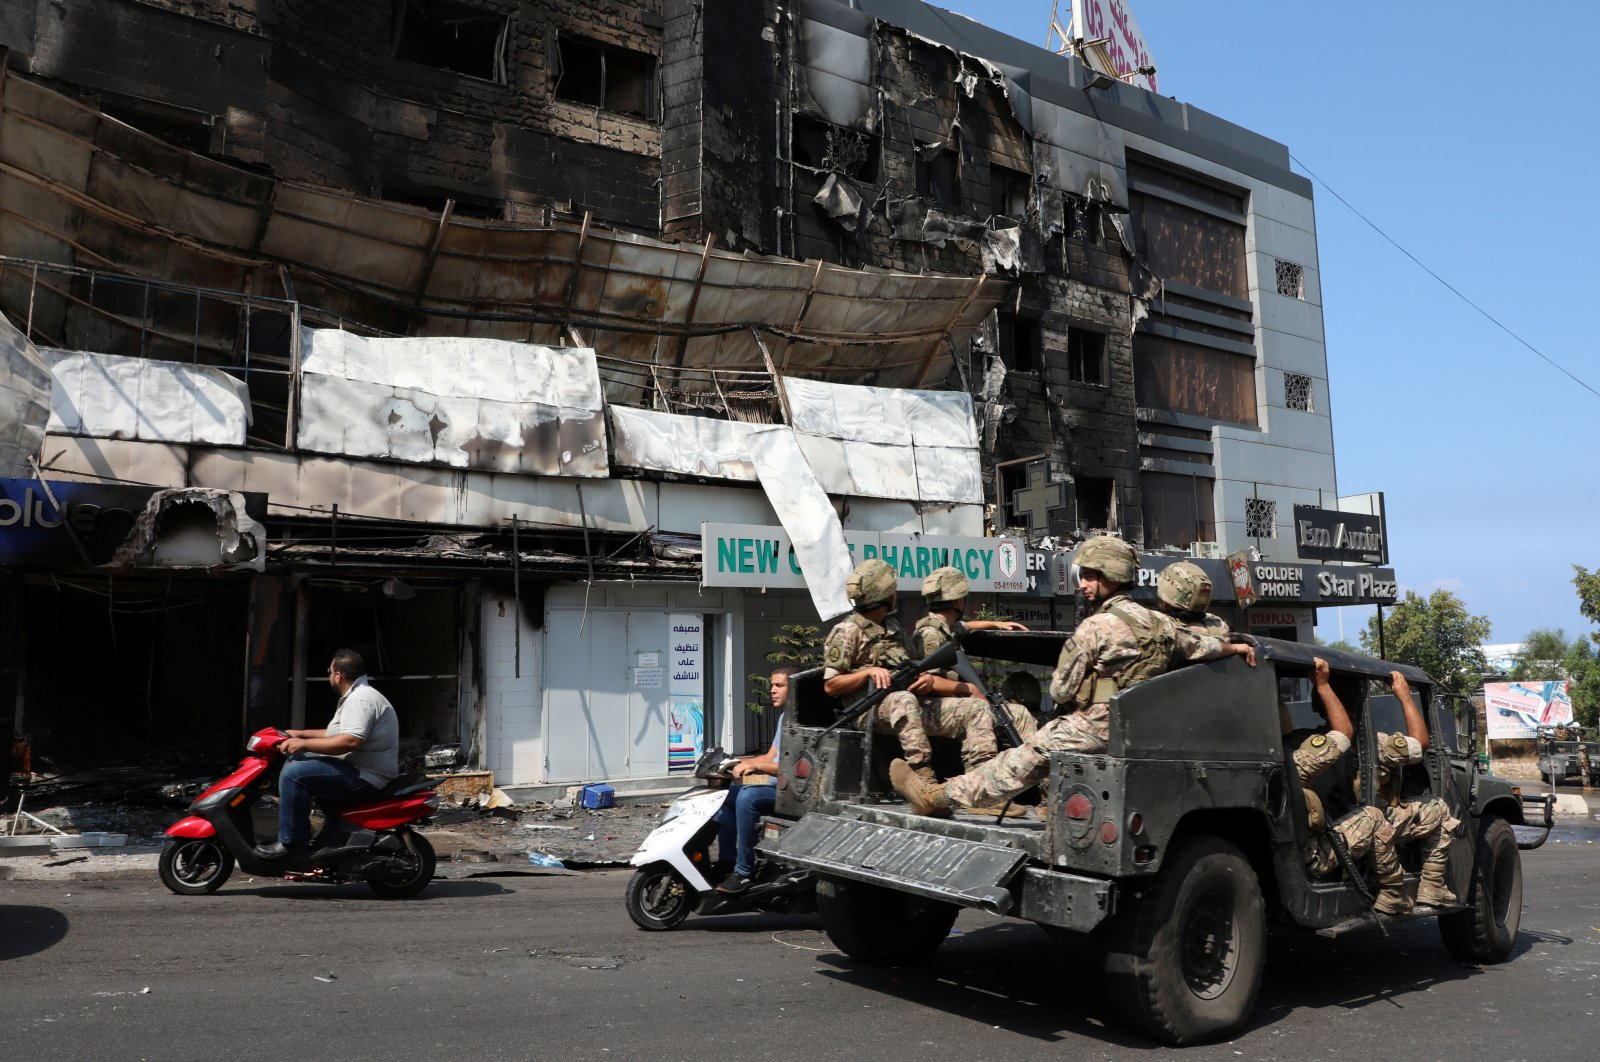 Lebanese soldiers patrol near burnt shops in the aftermath of clashes, Khaldeh, Lebanon, Aug. 28, 2020. (Reuters Photo)